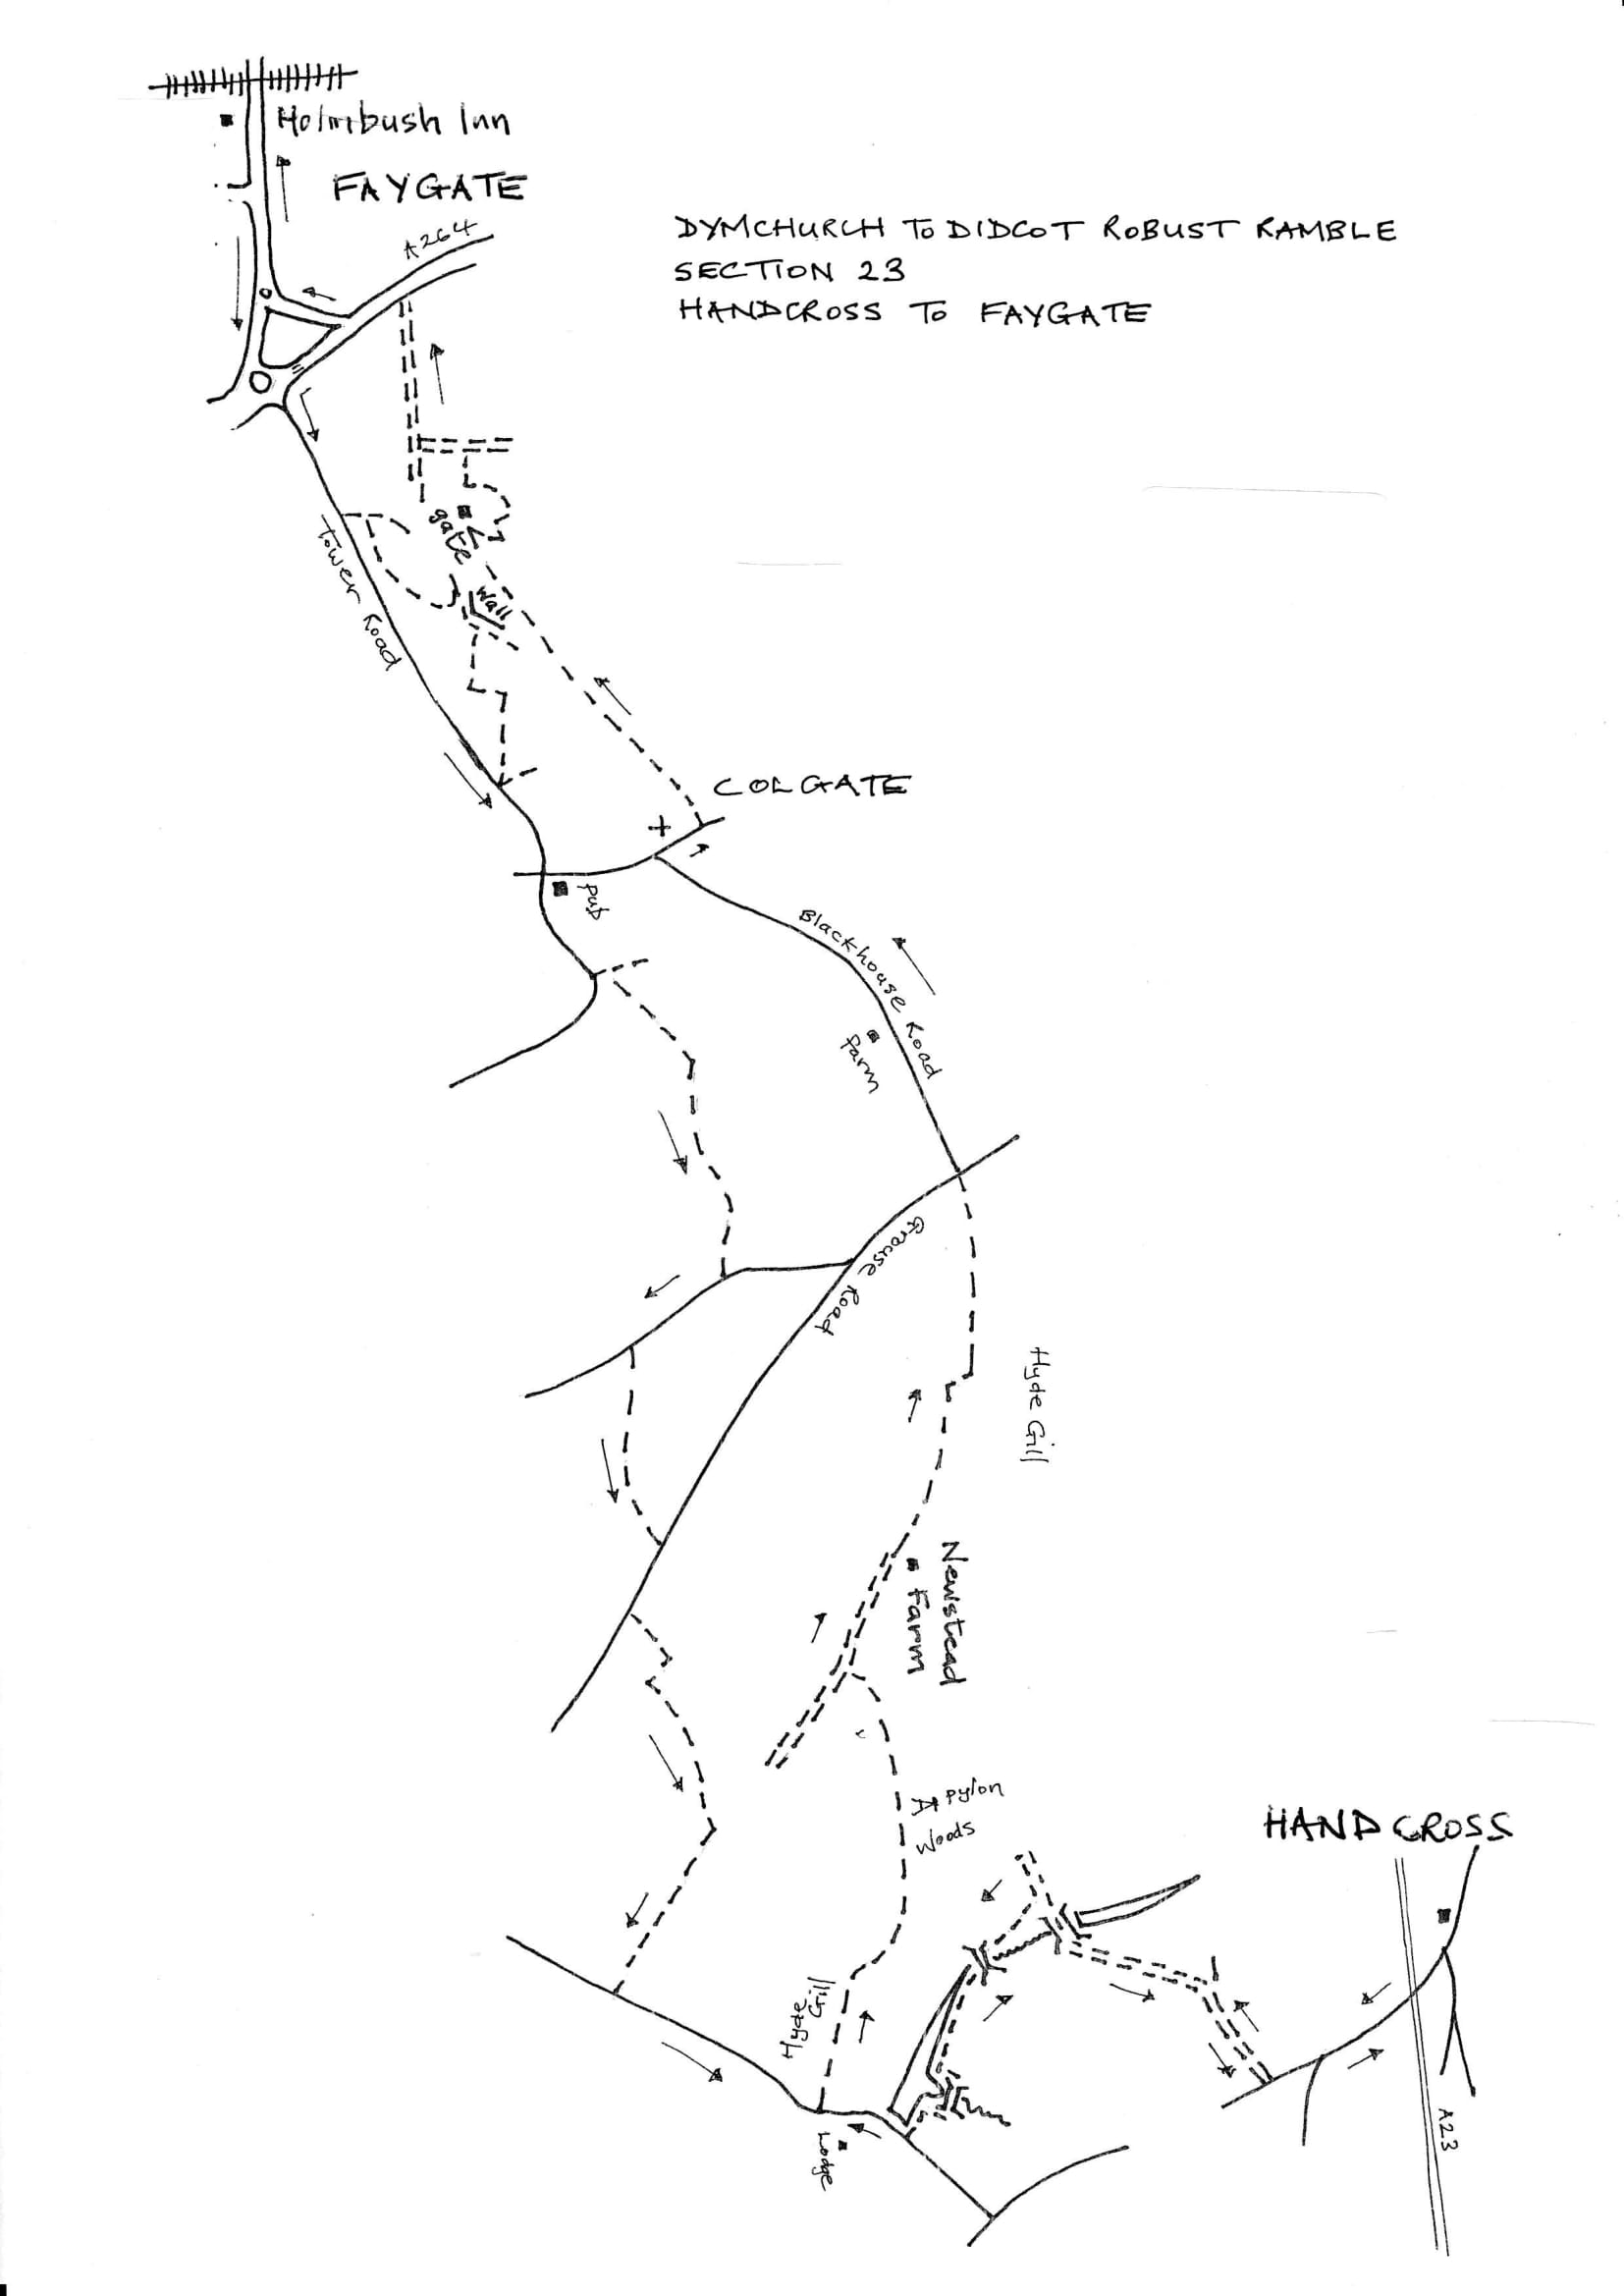 Map of Dymchurch To Didcot Robust Ramble: Section 23 Return